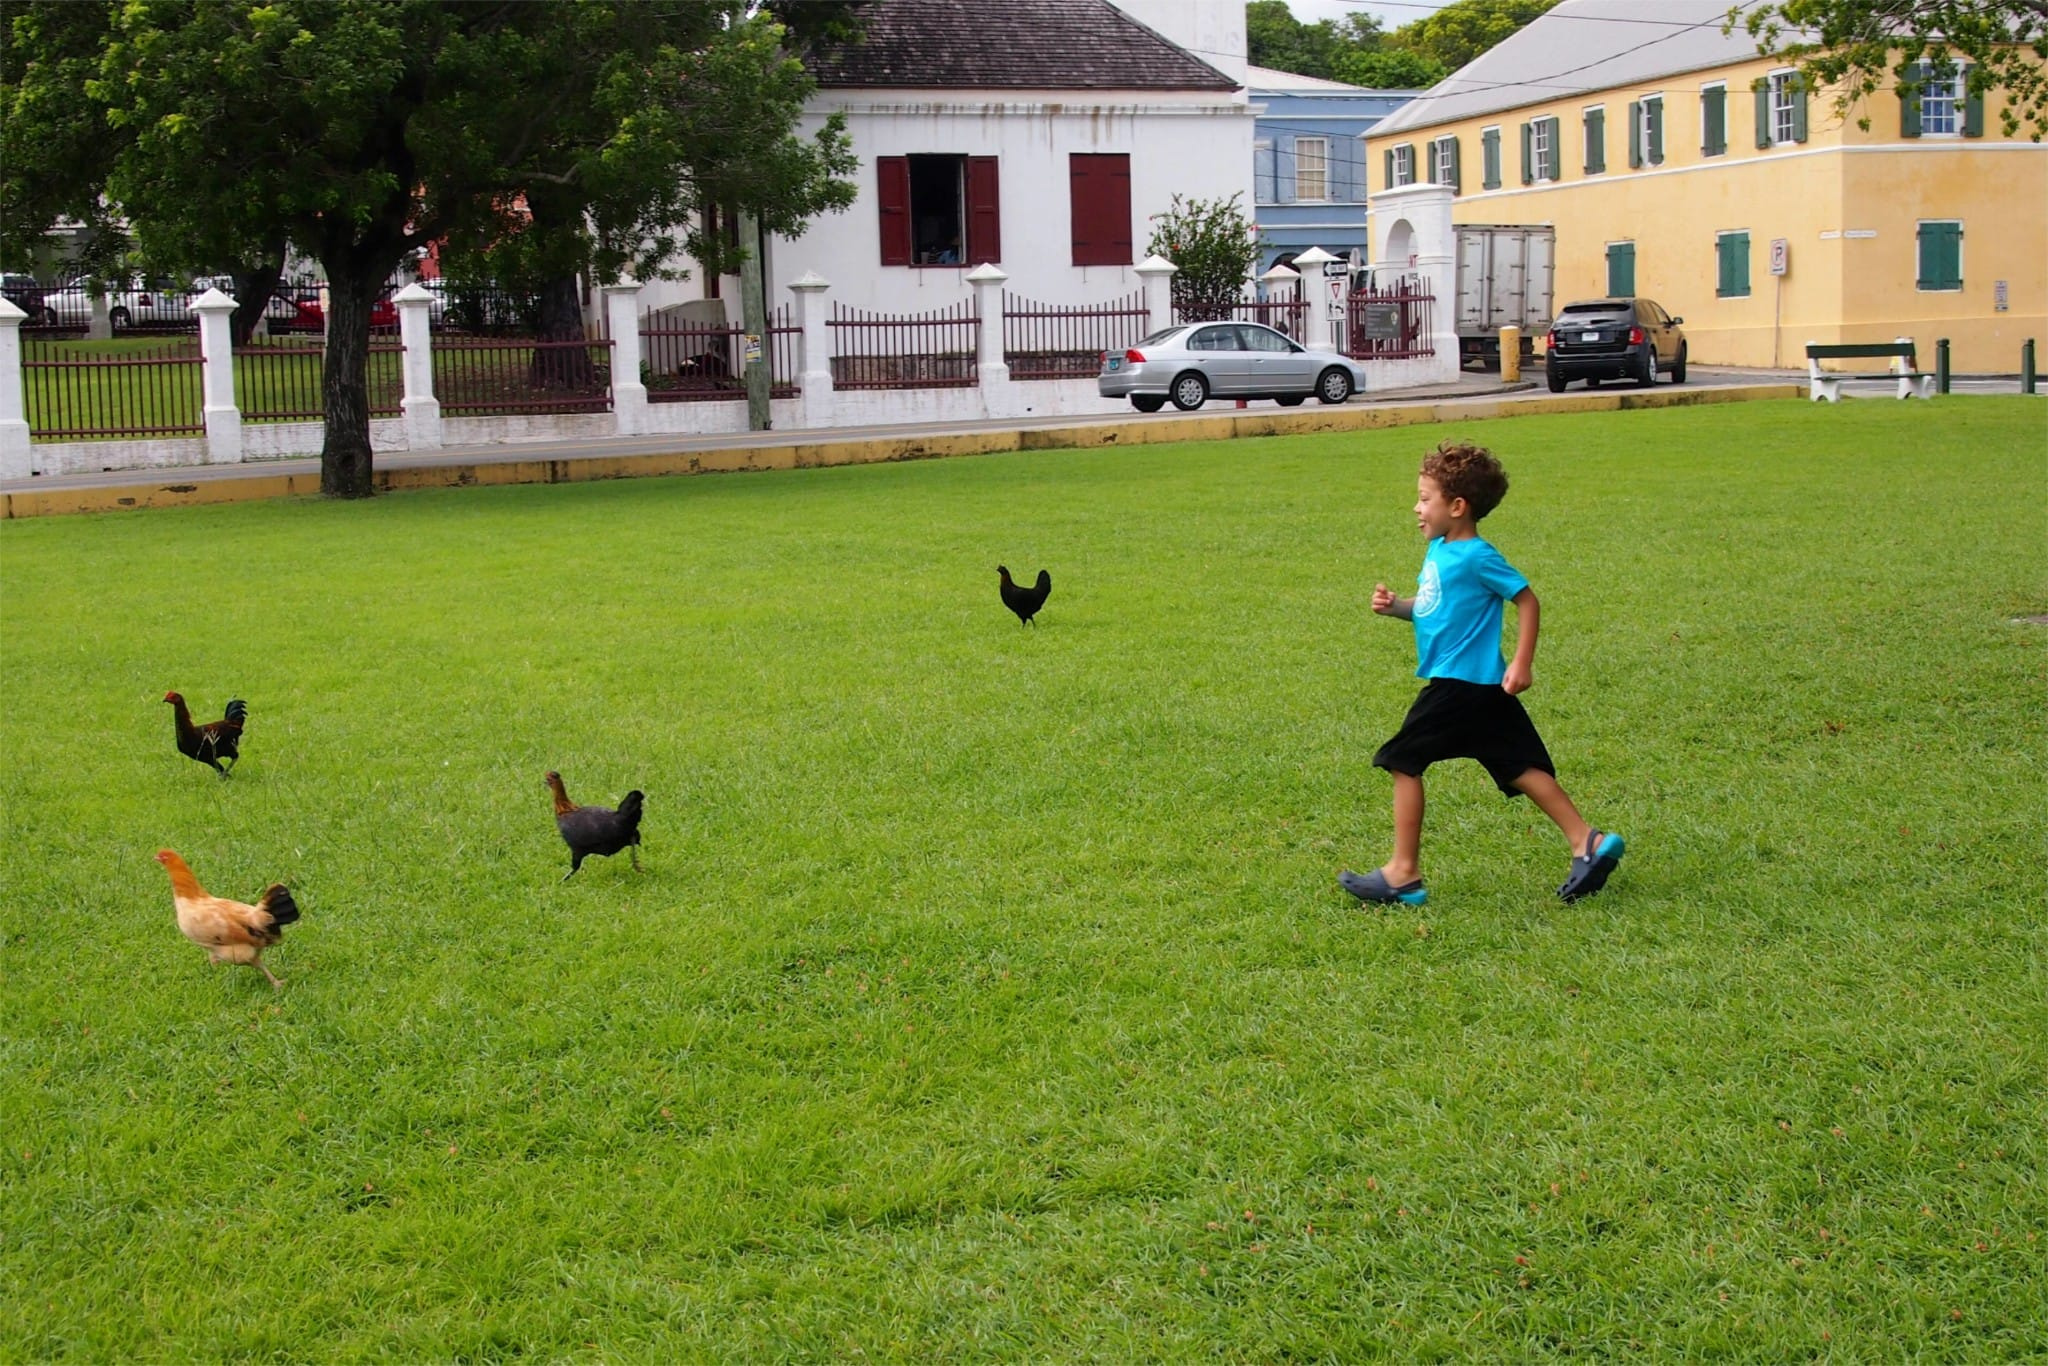 One Of The Simple Joys of Uncommon Travel in St. Croix